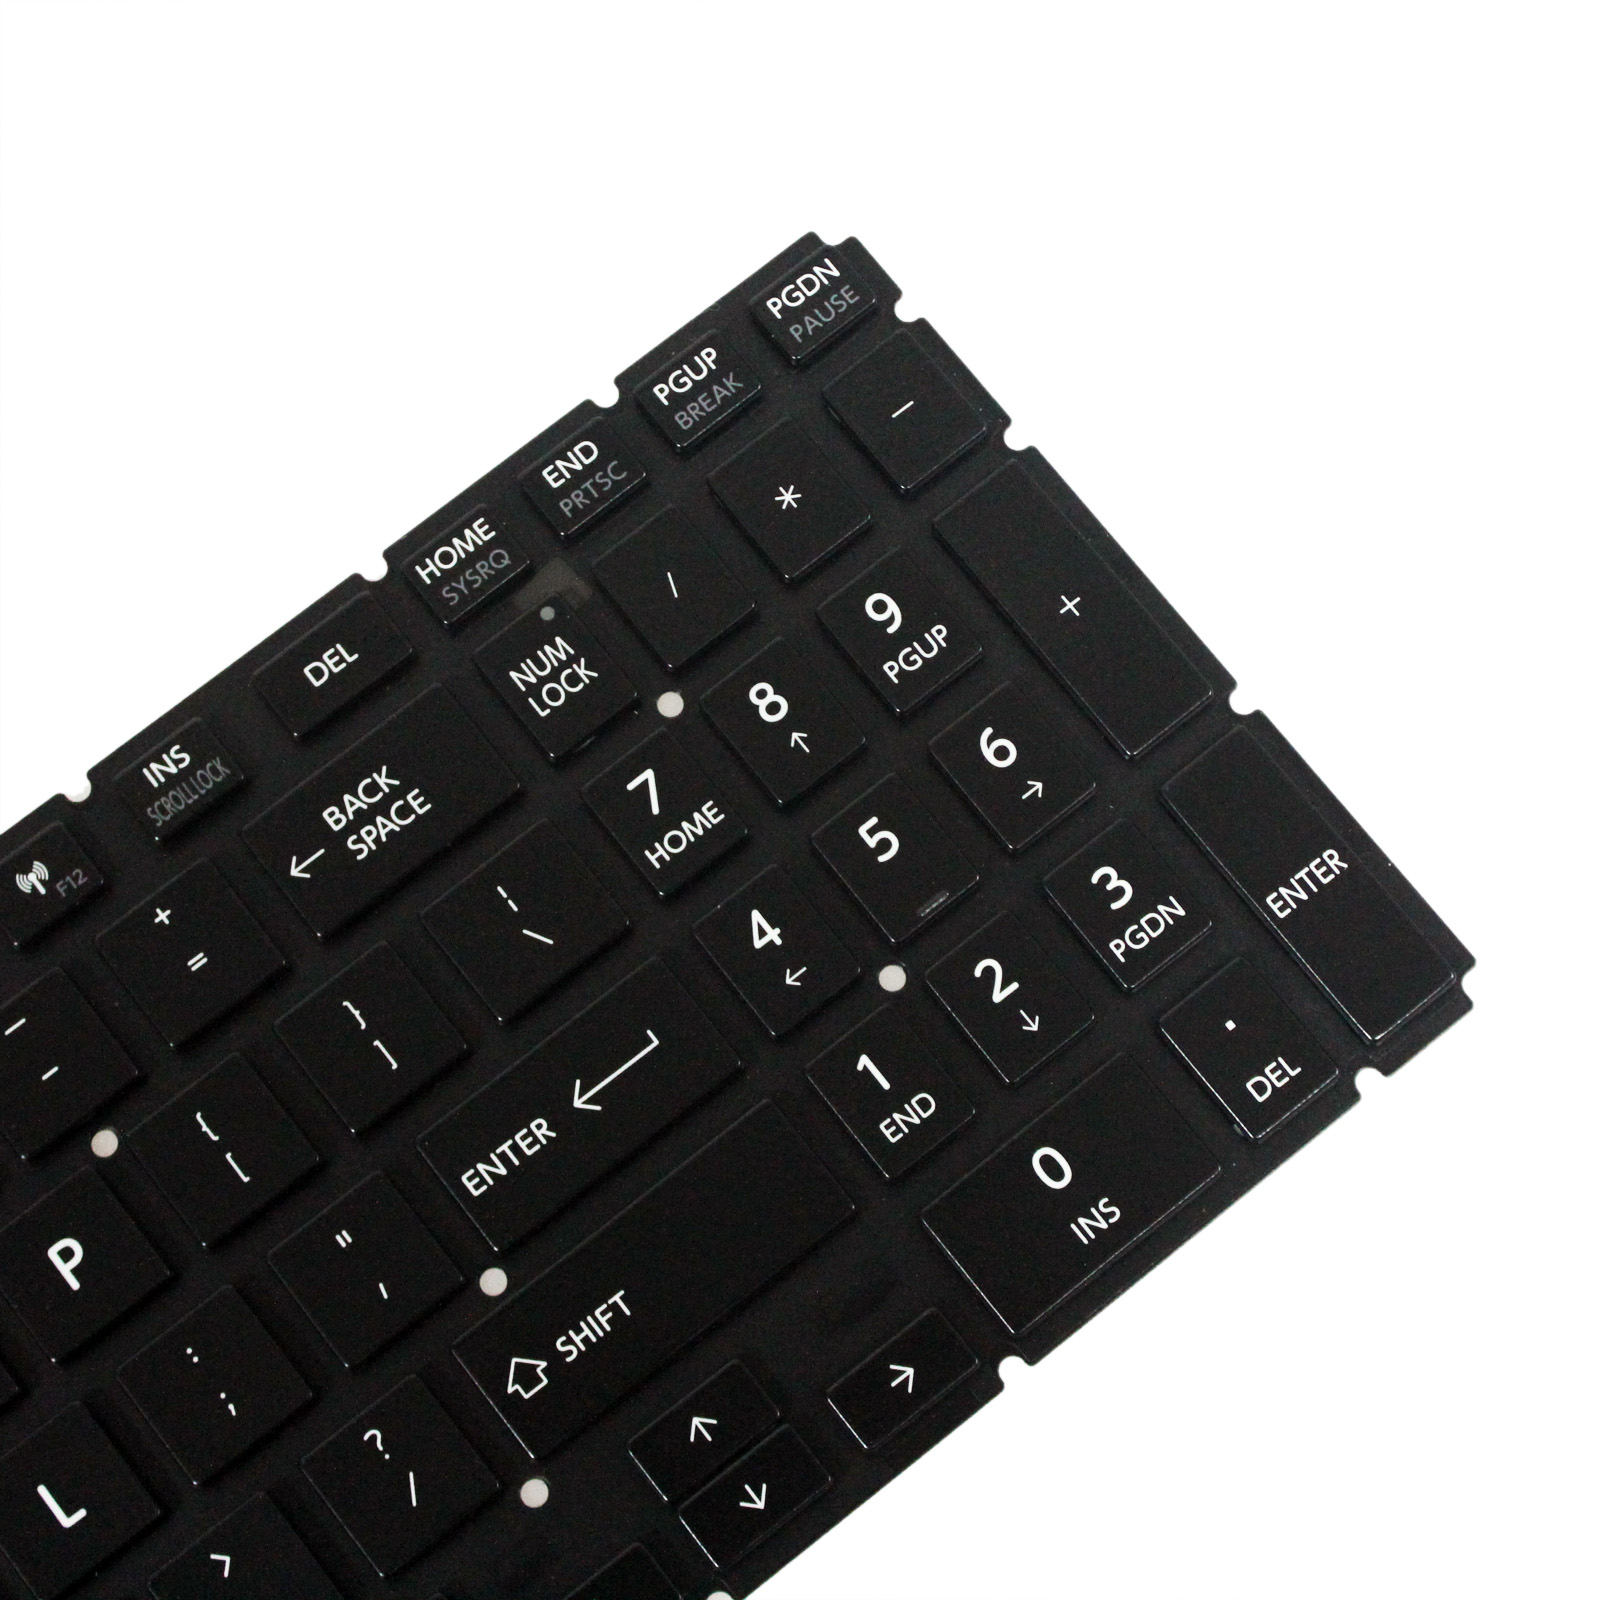 Original New for Toshiba AEBLIU01110 9Z.NBCBQ.001 US Black Backlit Keyboard